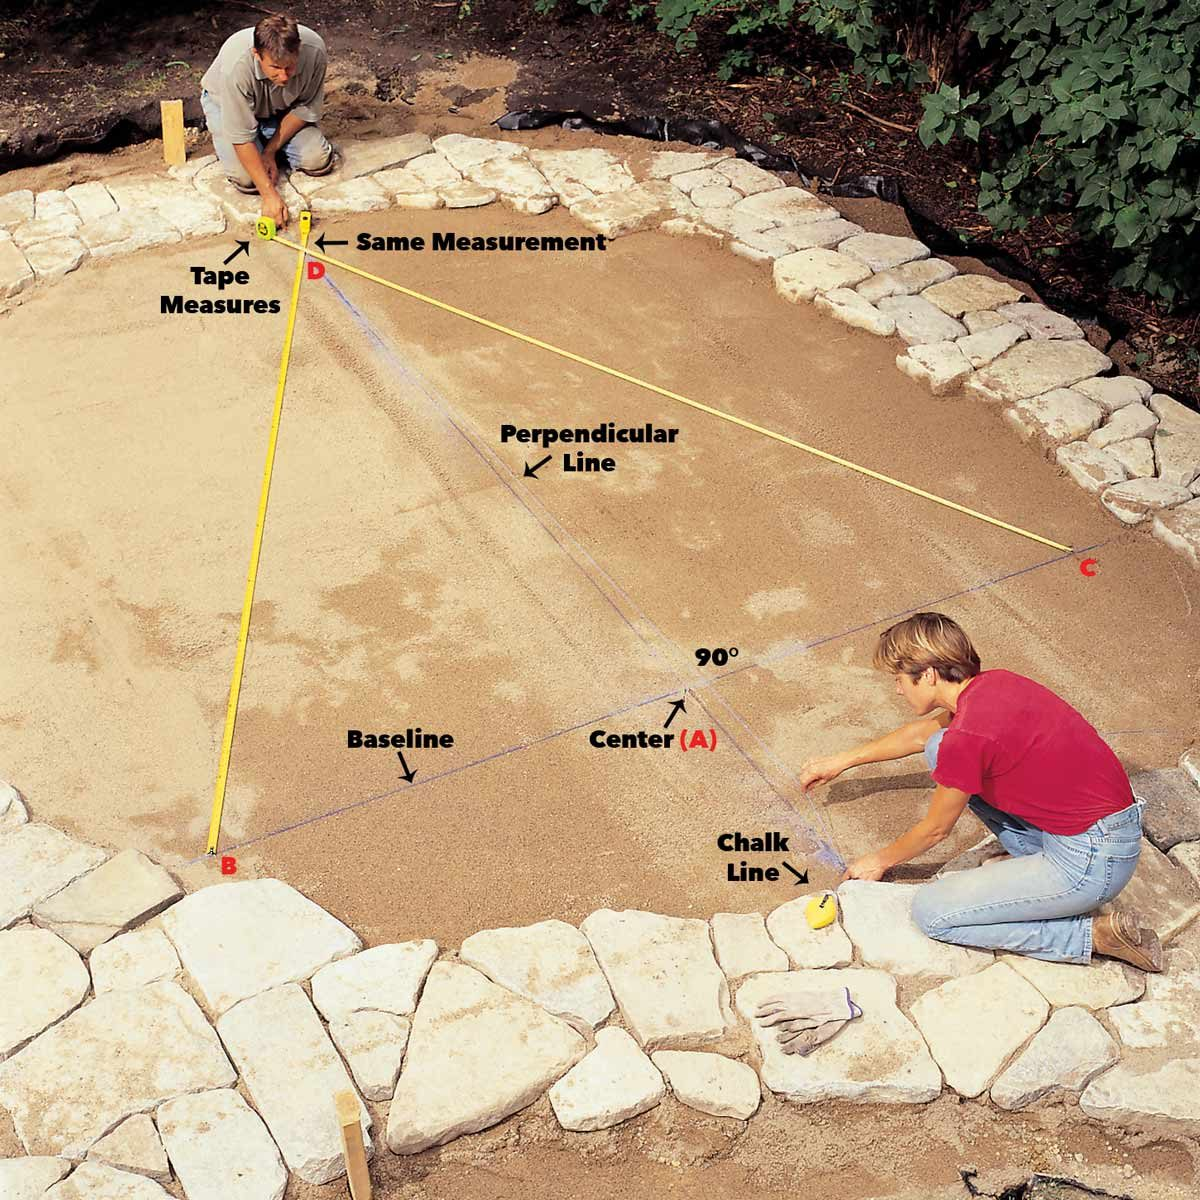 snap base line and perpendicular line stone patio